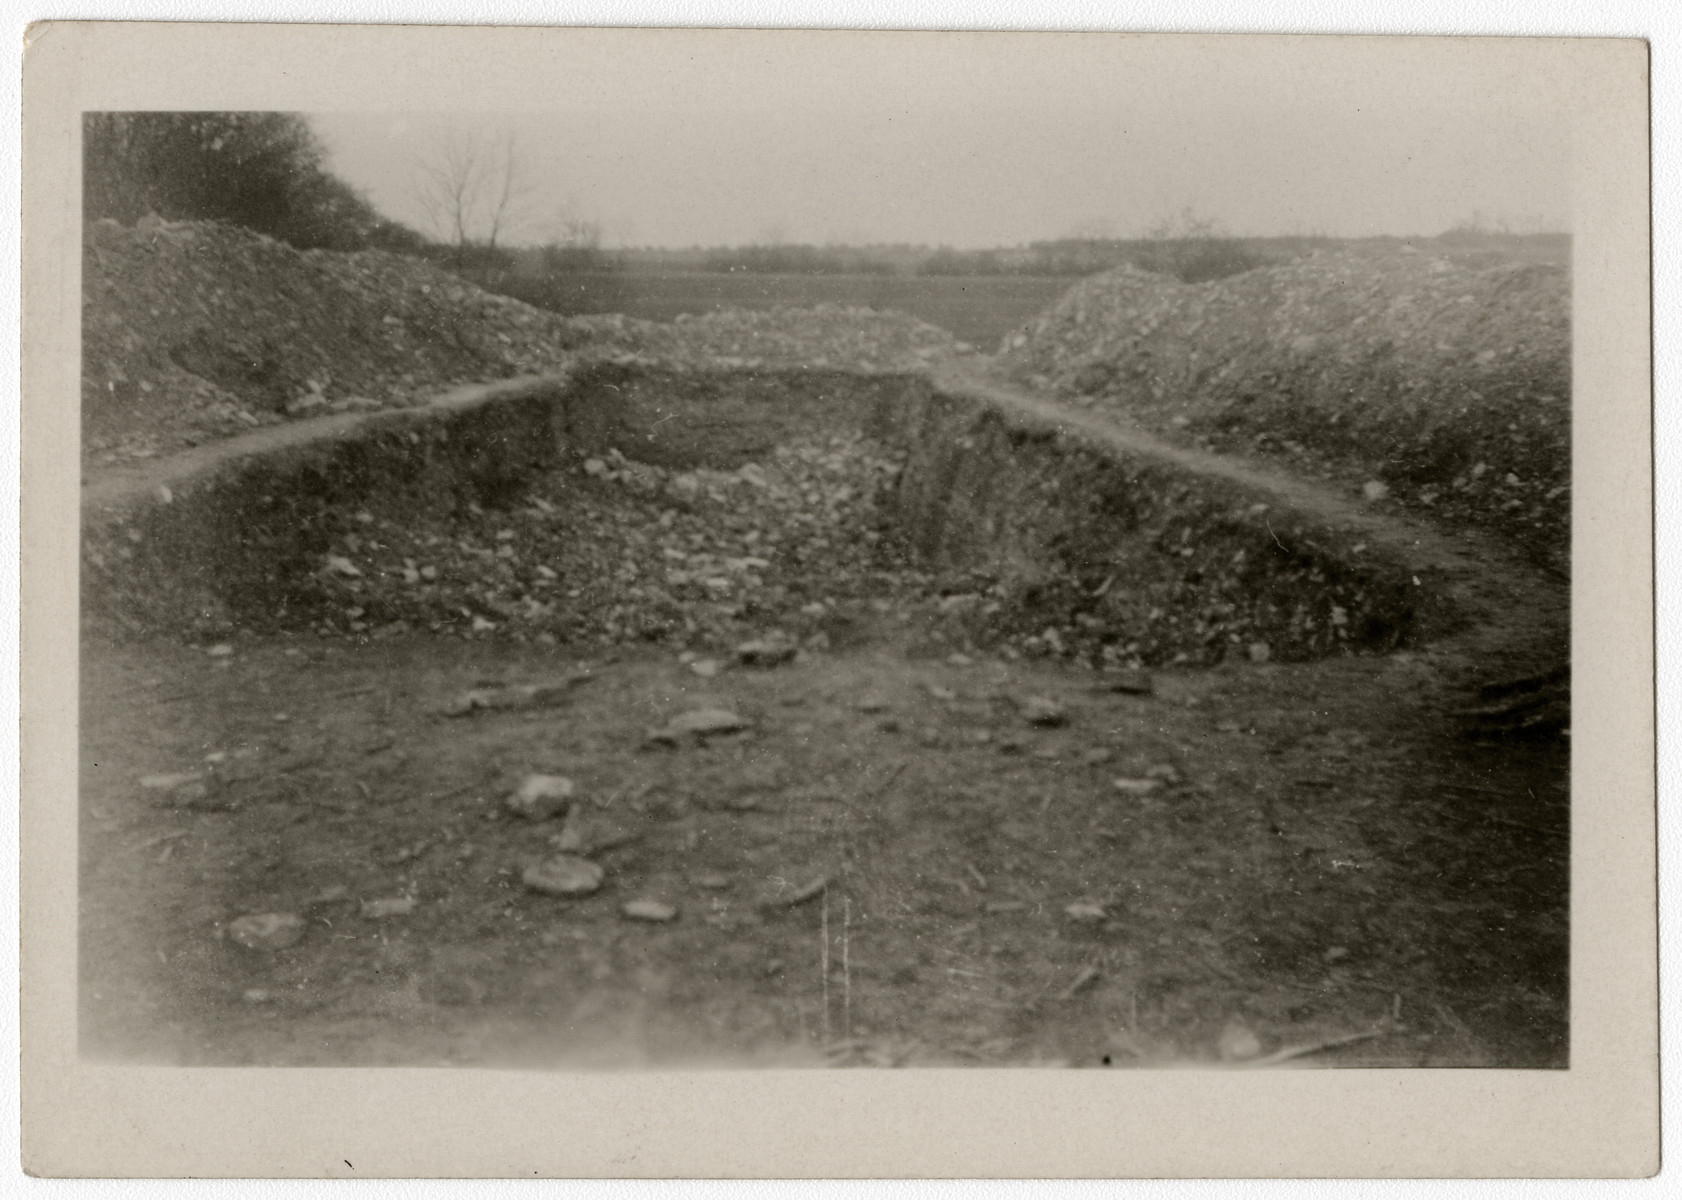 View of a large ditch for mass burials at the Ohrdruf concentration camp.